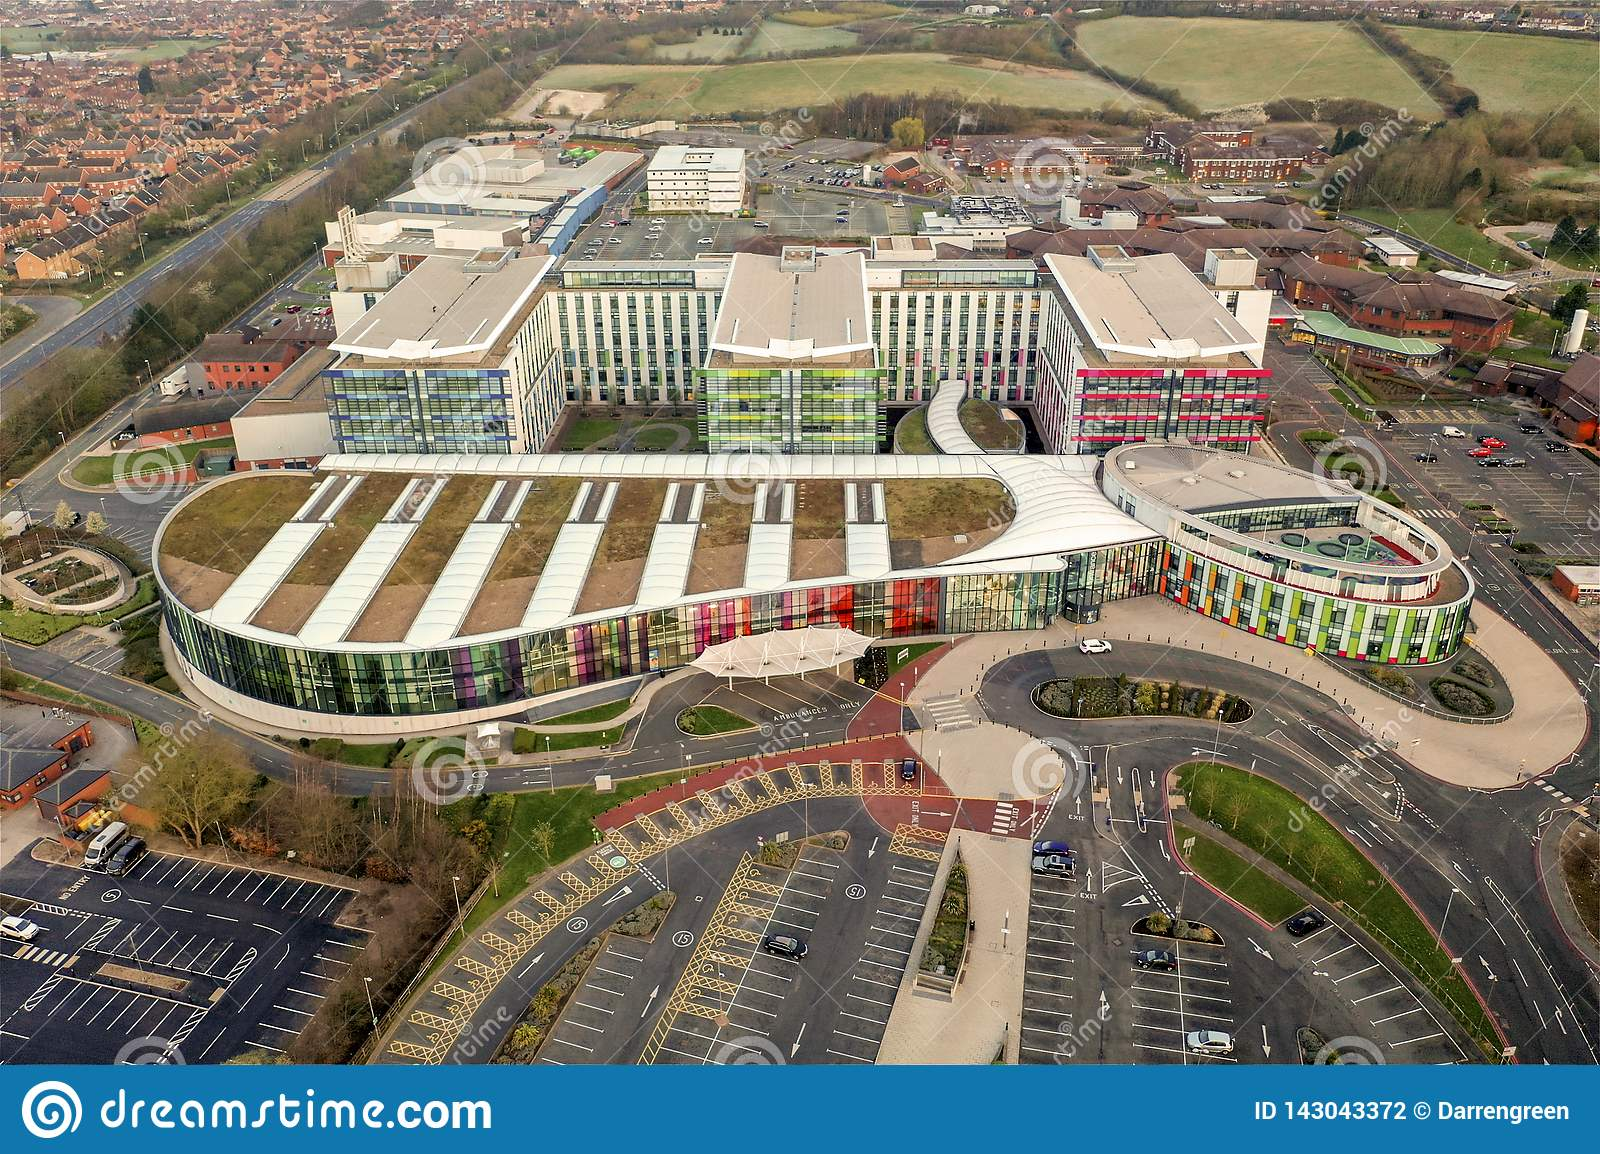 Aerial View of Kings Mill Hospital, Nottingham, England